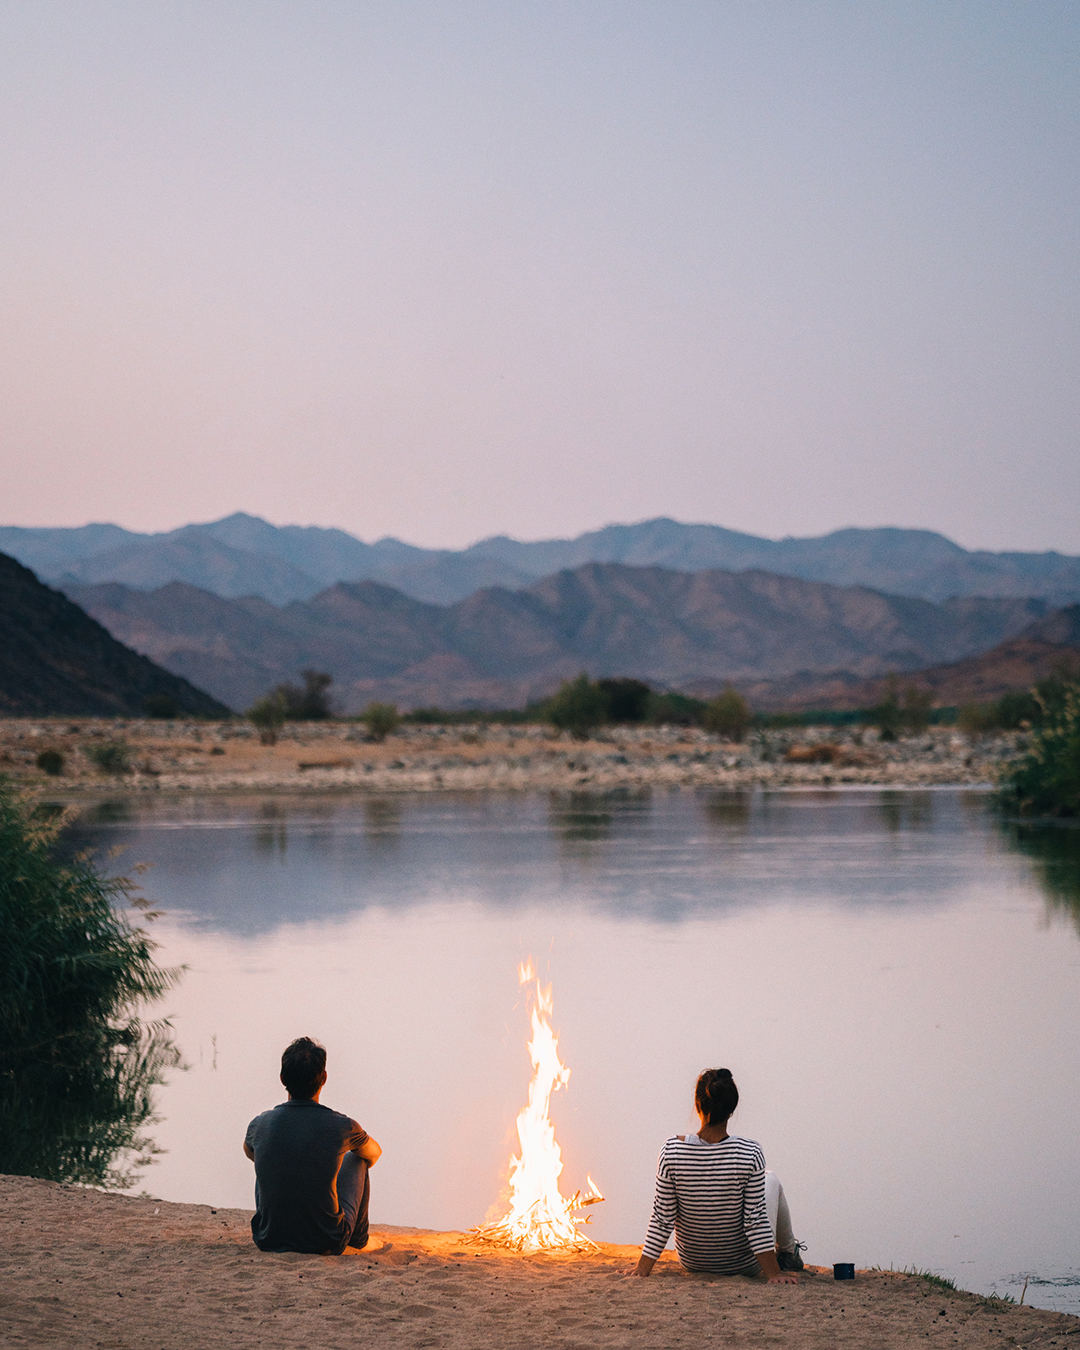 two people sitting on edge of river bank with small fire, looking out onto river at sunset